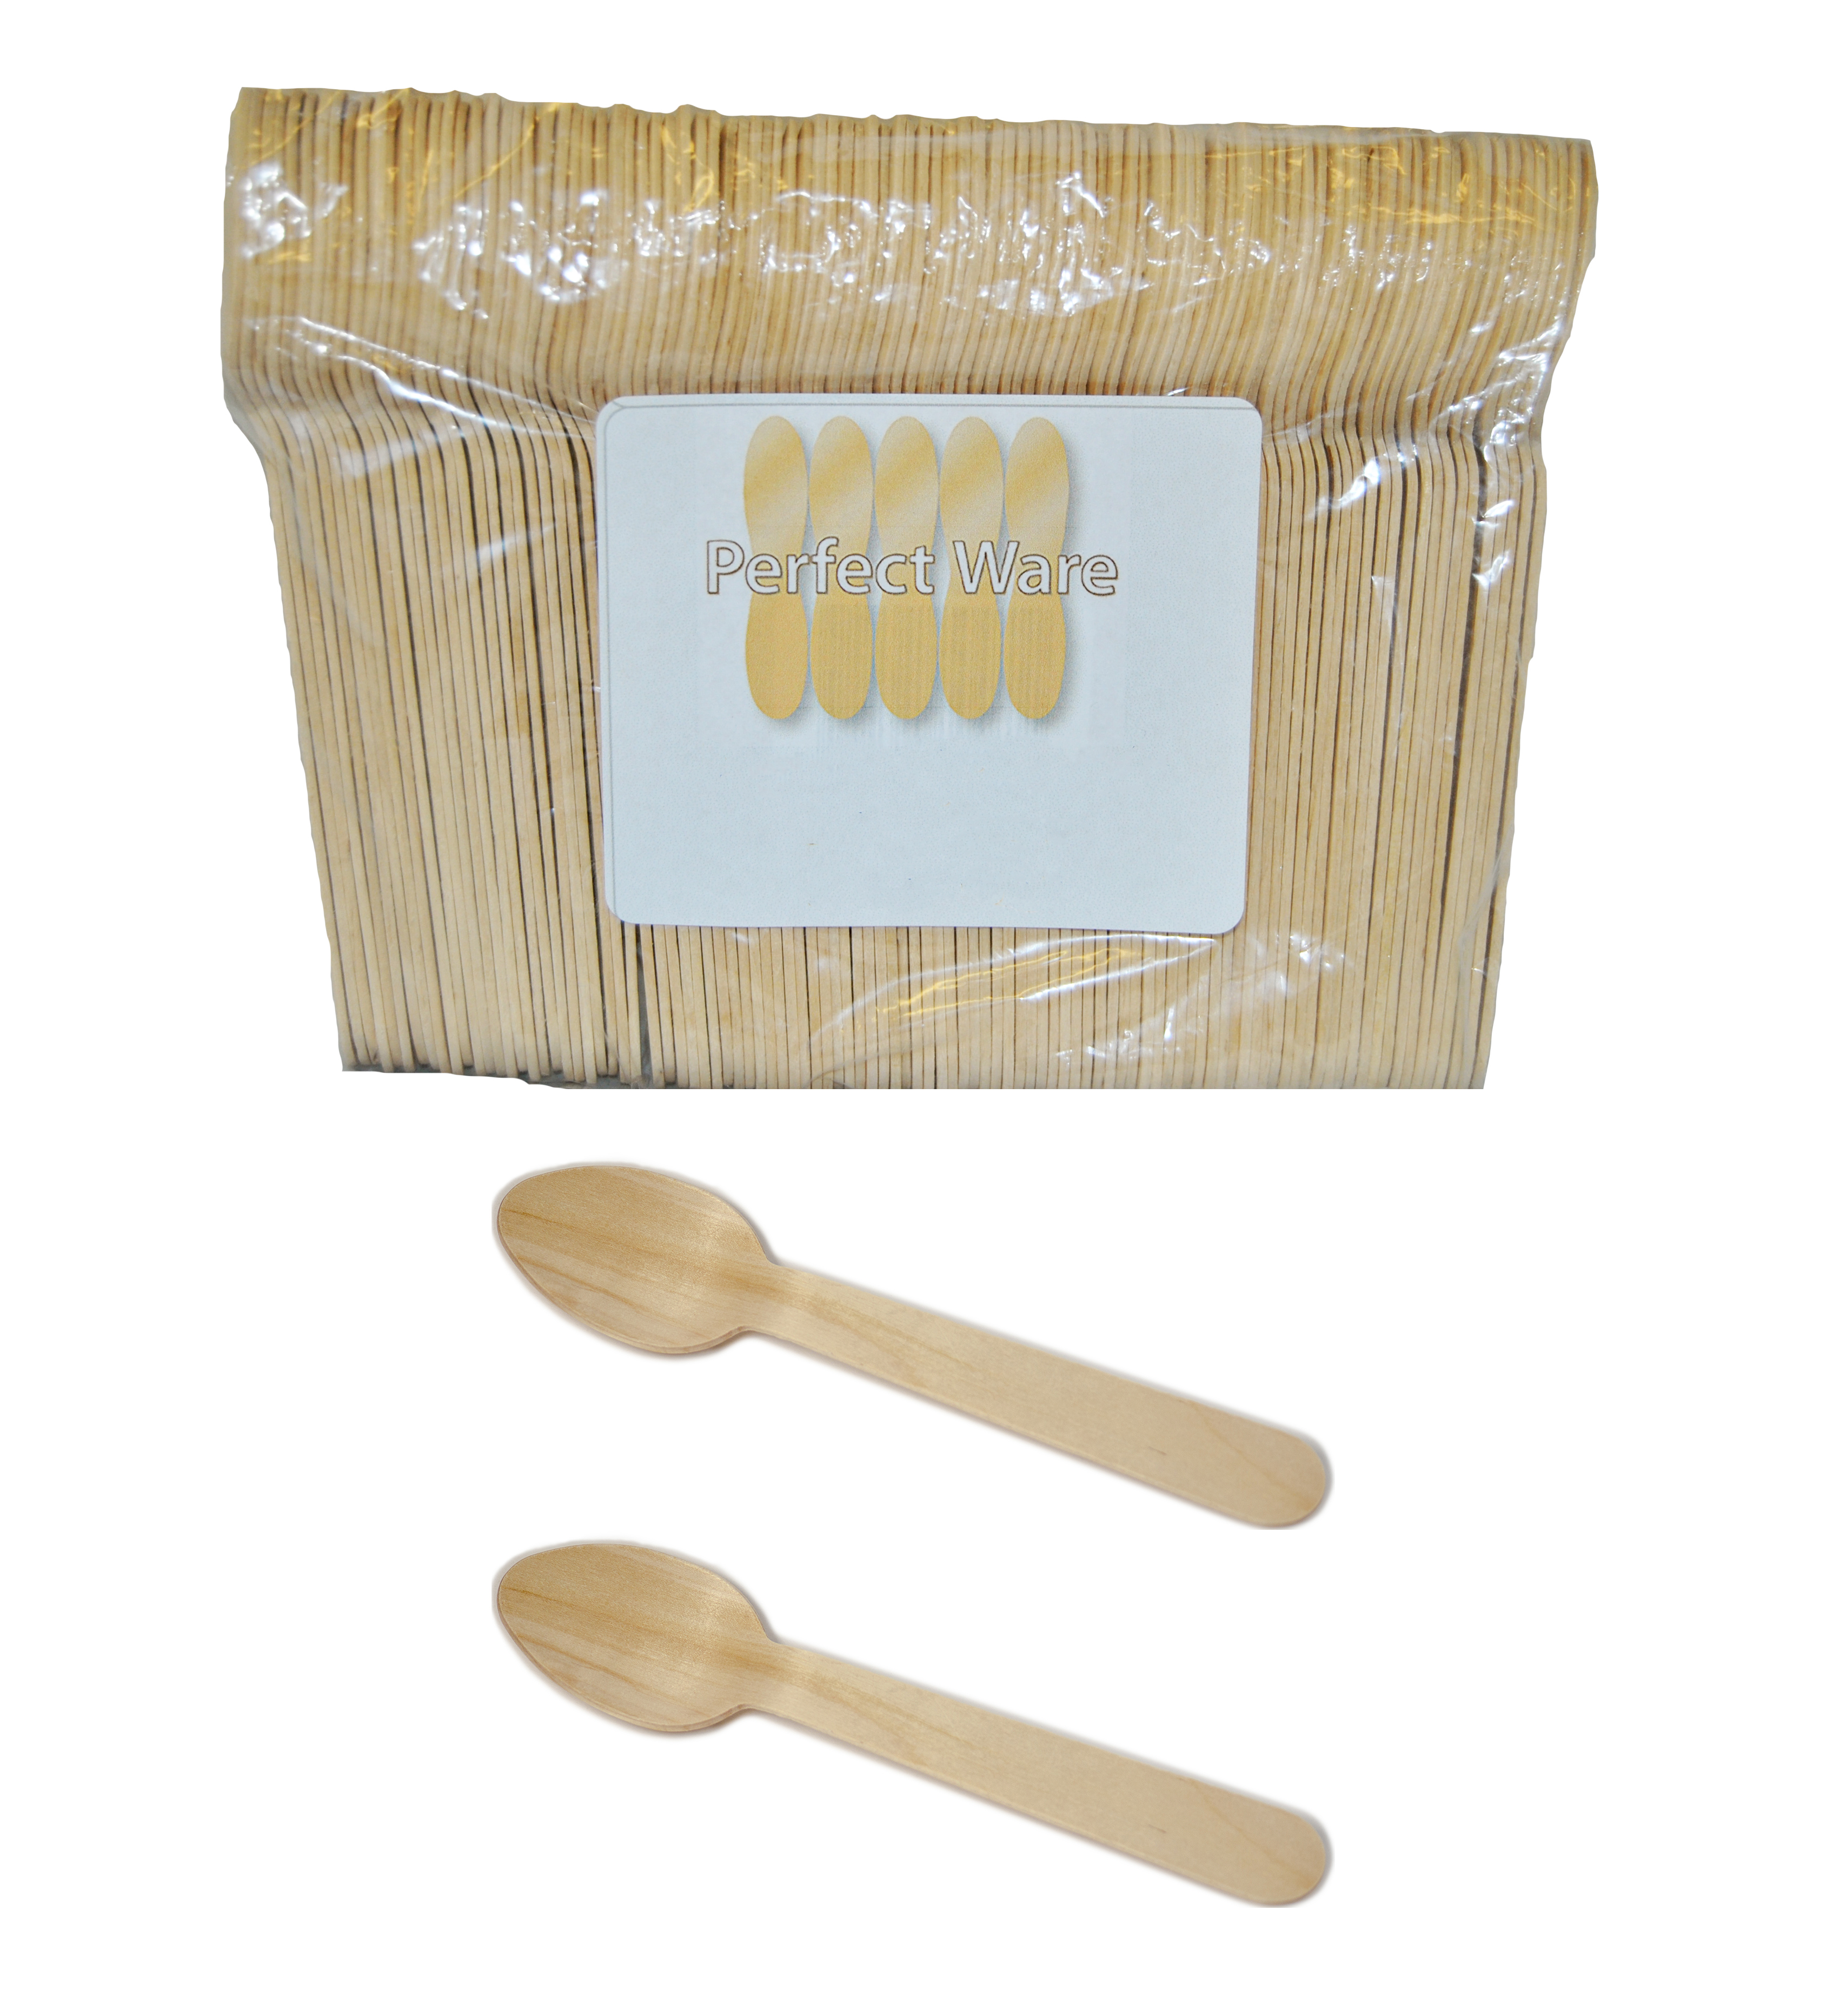 """6"""" Wooden Premium Perfect Ware Cutlery Spoons. Case of 10,000ct (Item# Perfect Ware 165SP)"""